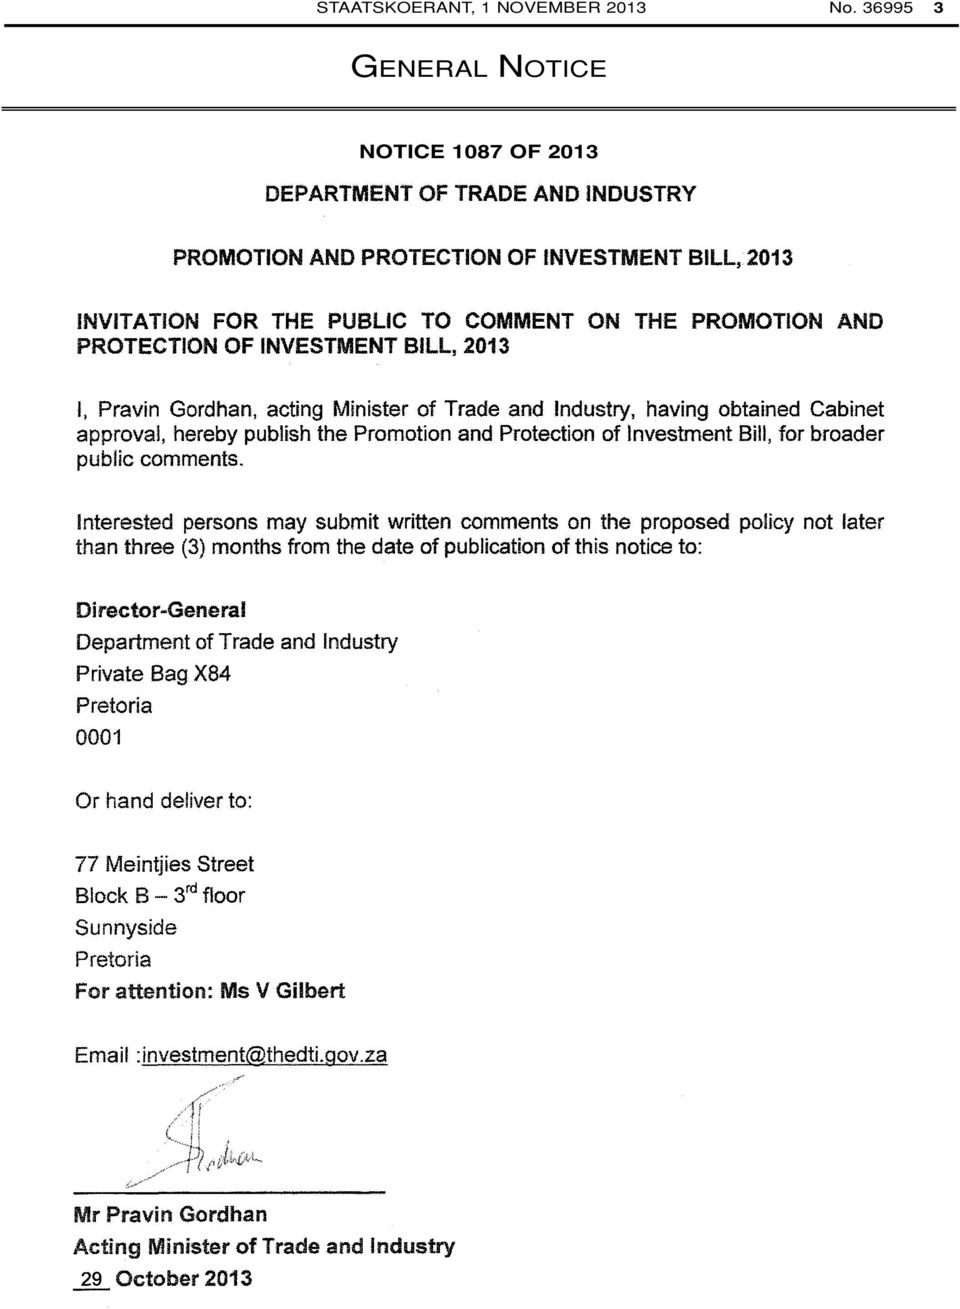 INVESTMENT BILL, 2013 I, Pravin Gordhan, acting Minister of Trade and Industry, having obtained Cabinet approval, hereby publish the Promotion and Protection of Investment Bill, for broader public